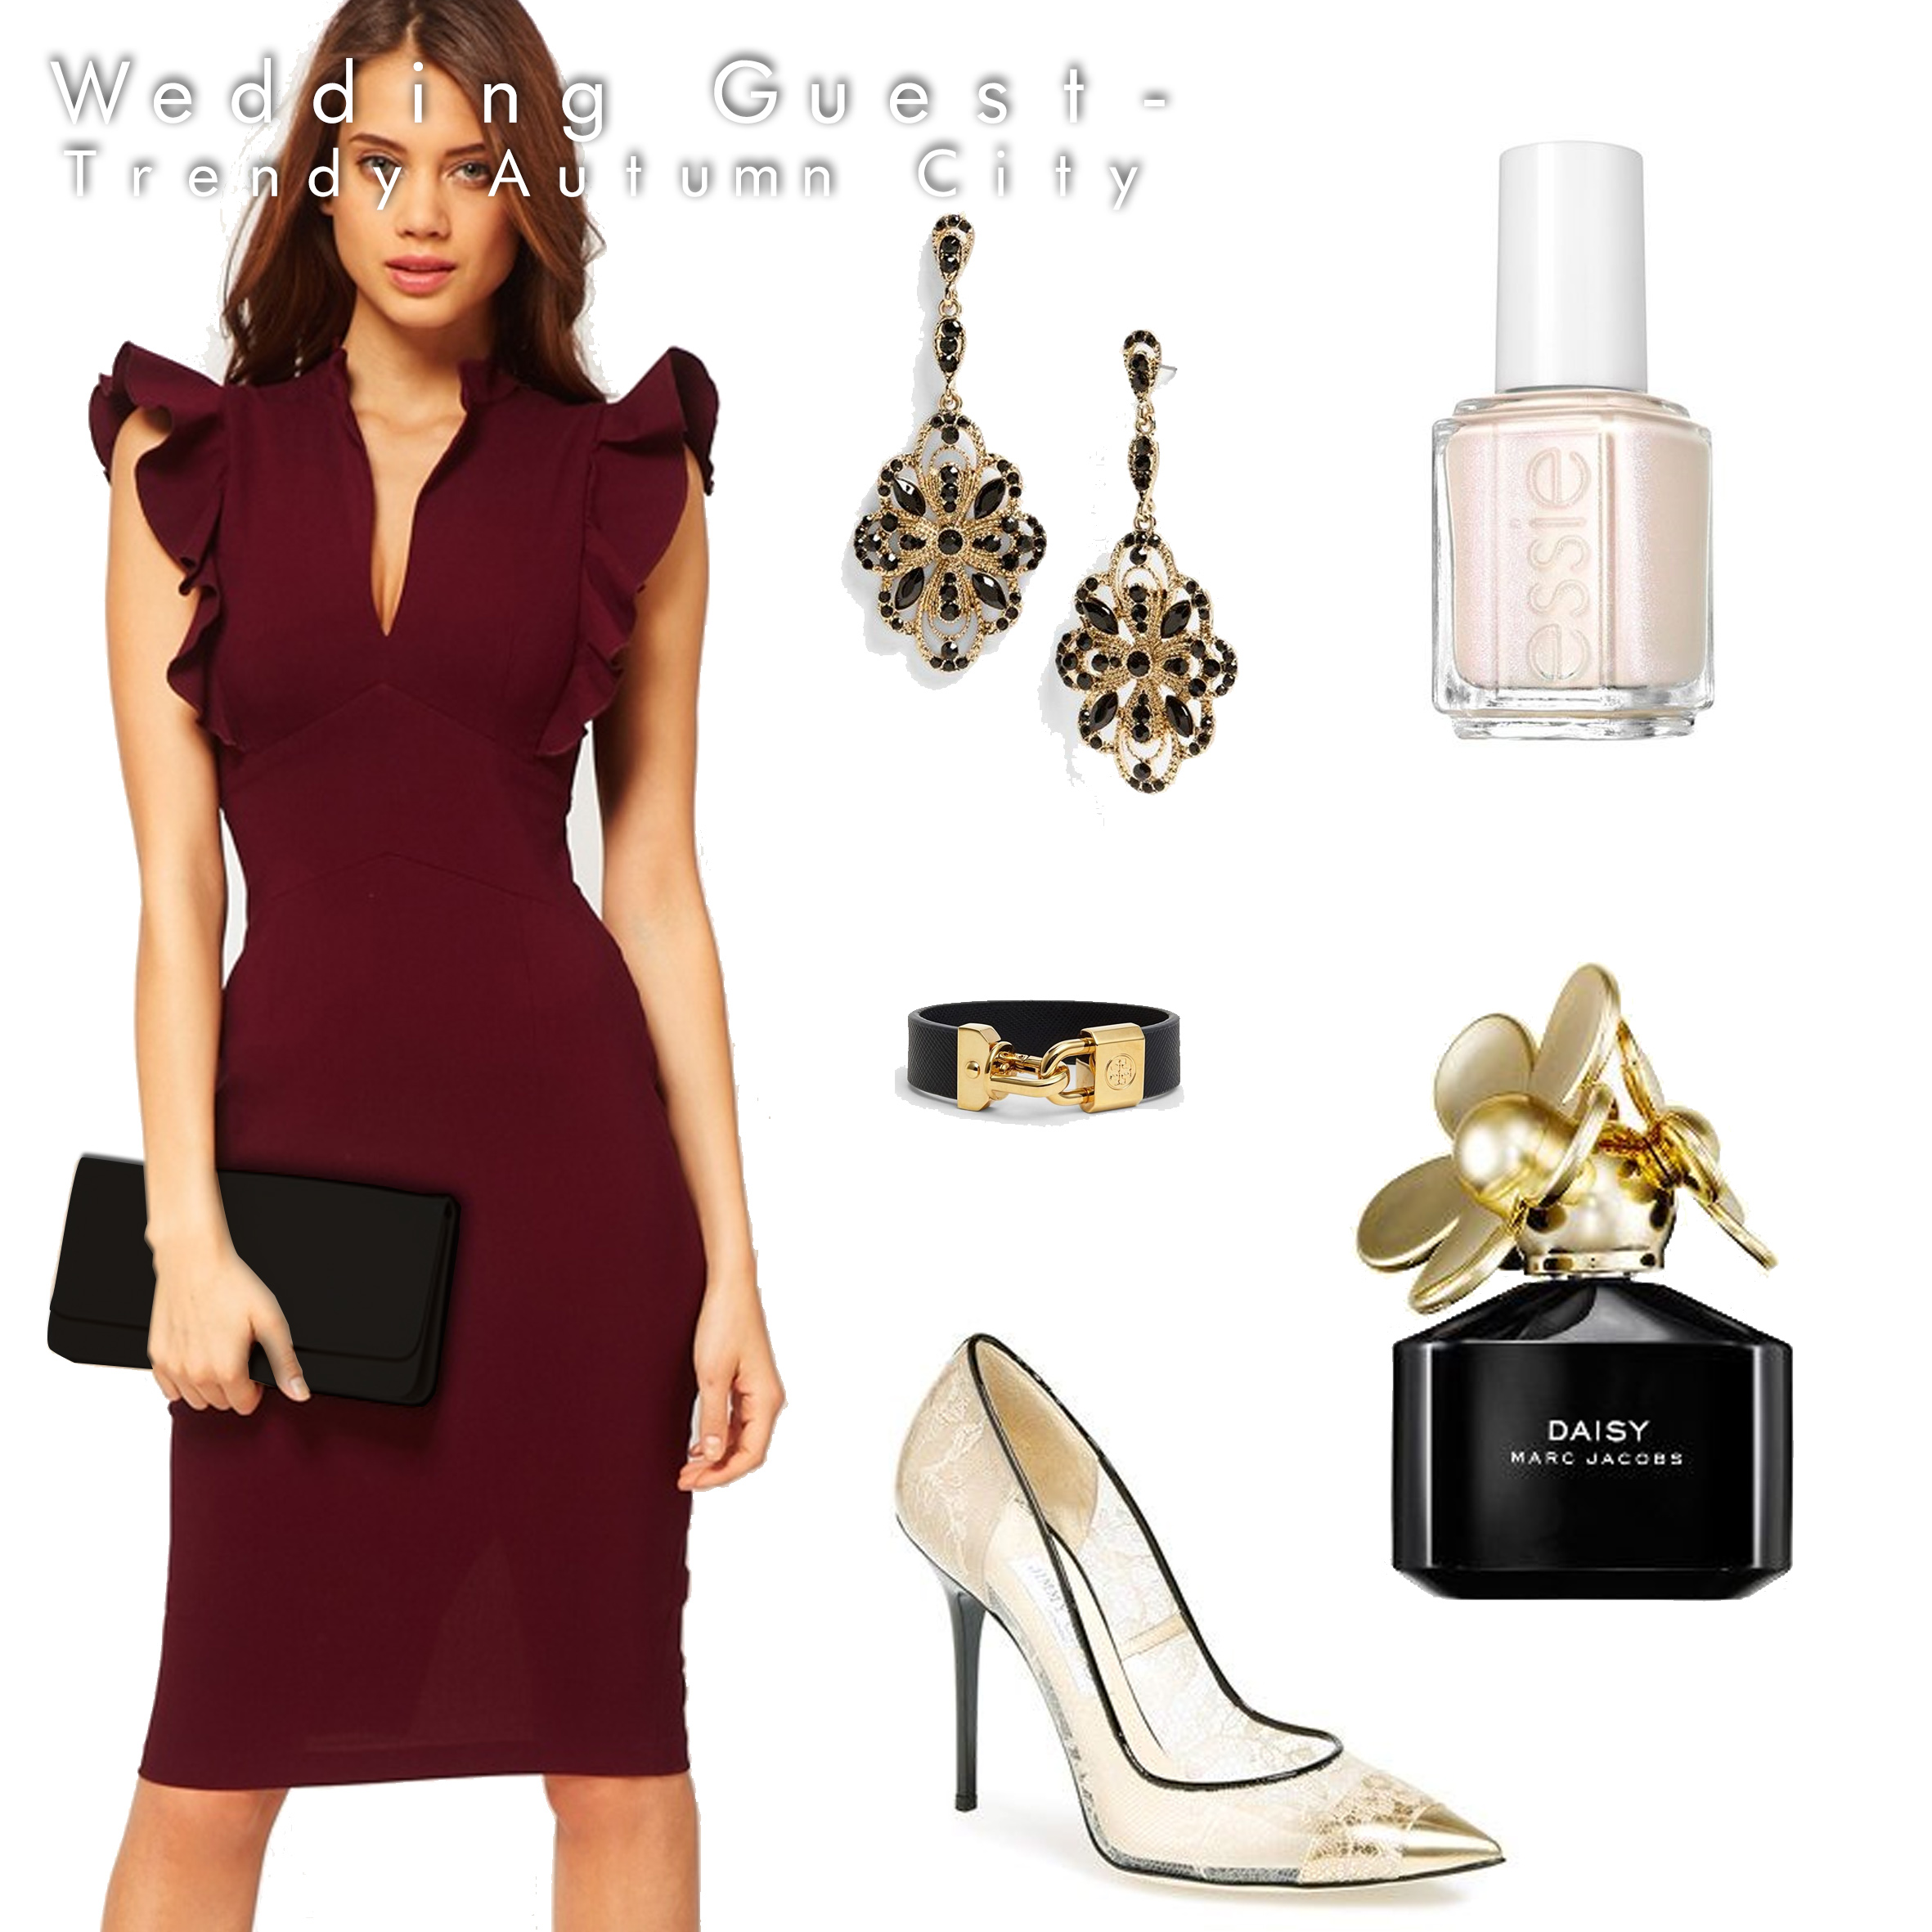 nail polish wedding guest dresses Wedding guest outfit for autumn